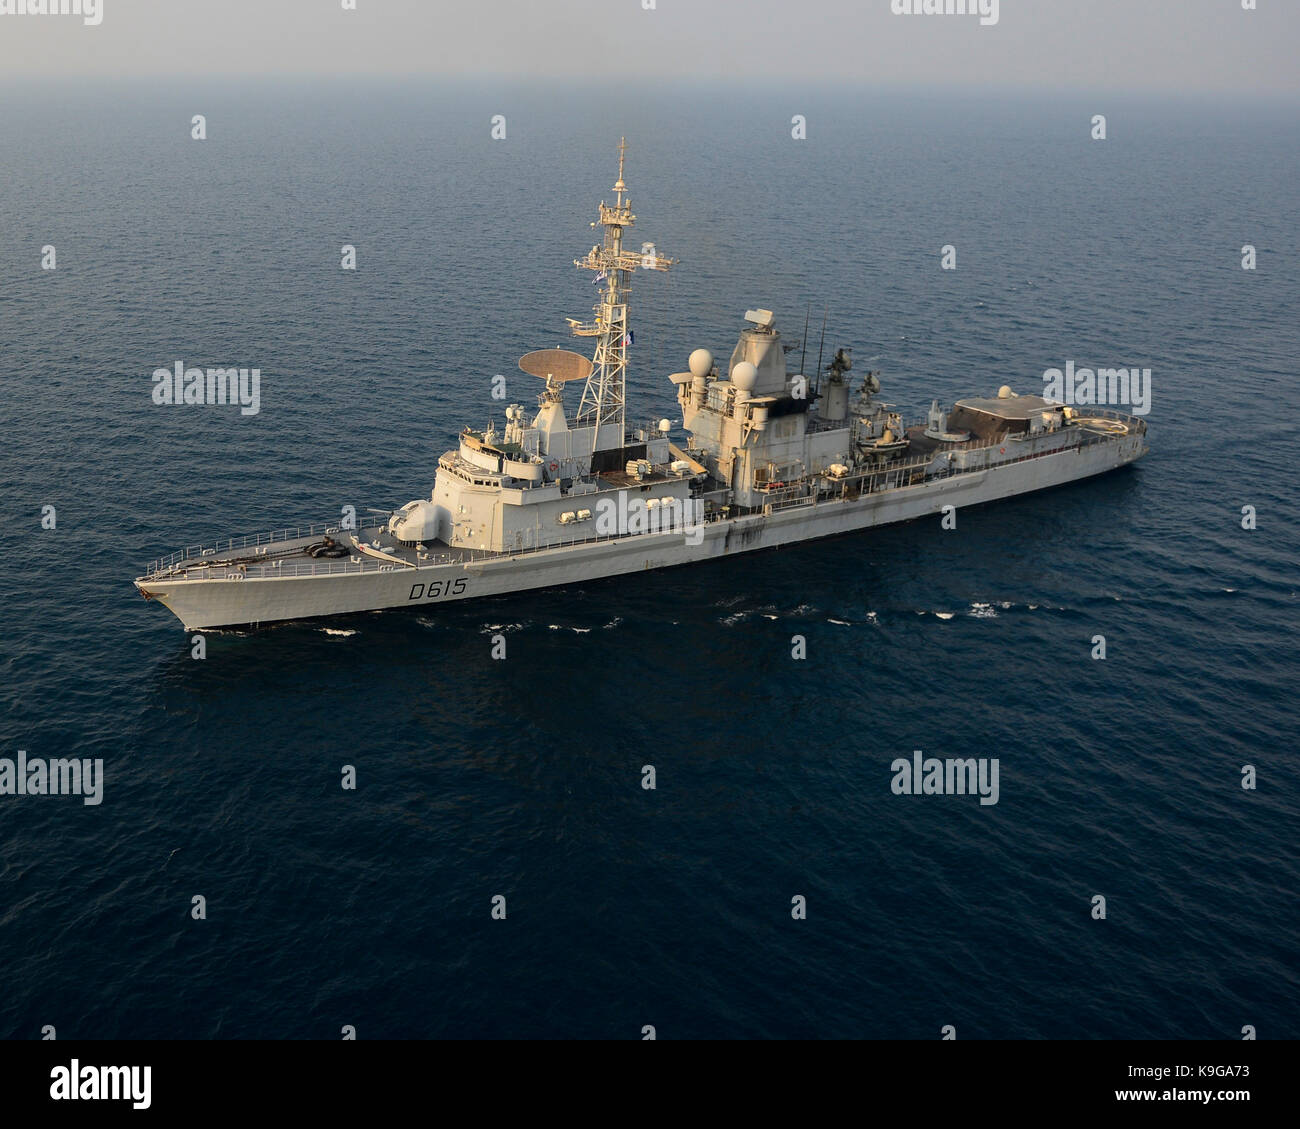 The French navy air defense destroyer FS Jean Bart (D615) transits the Arabian Gulf. - Stock Image